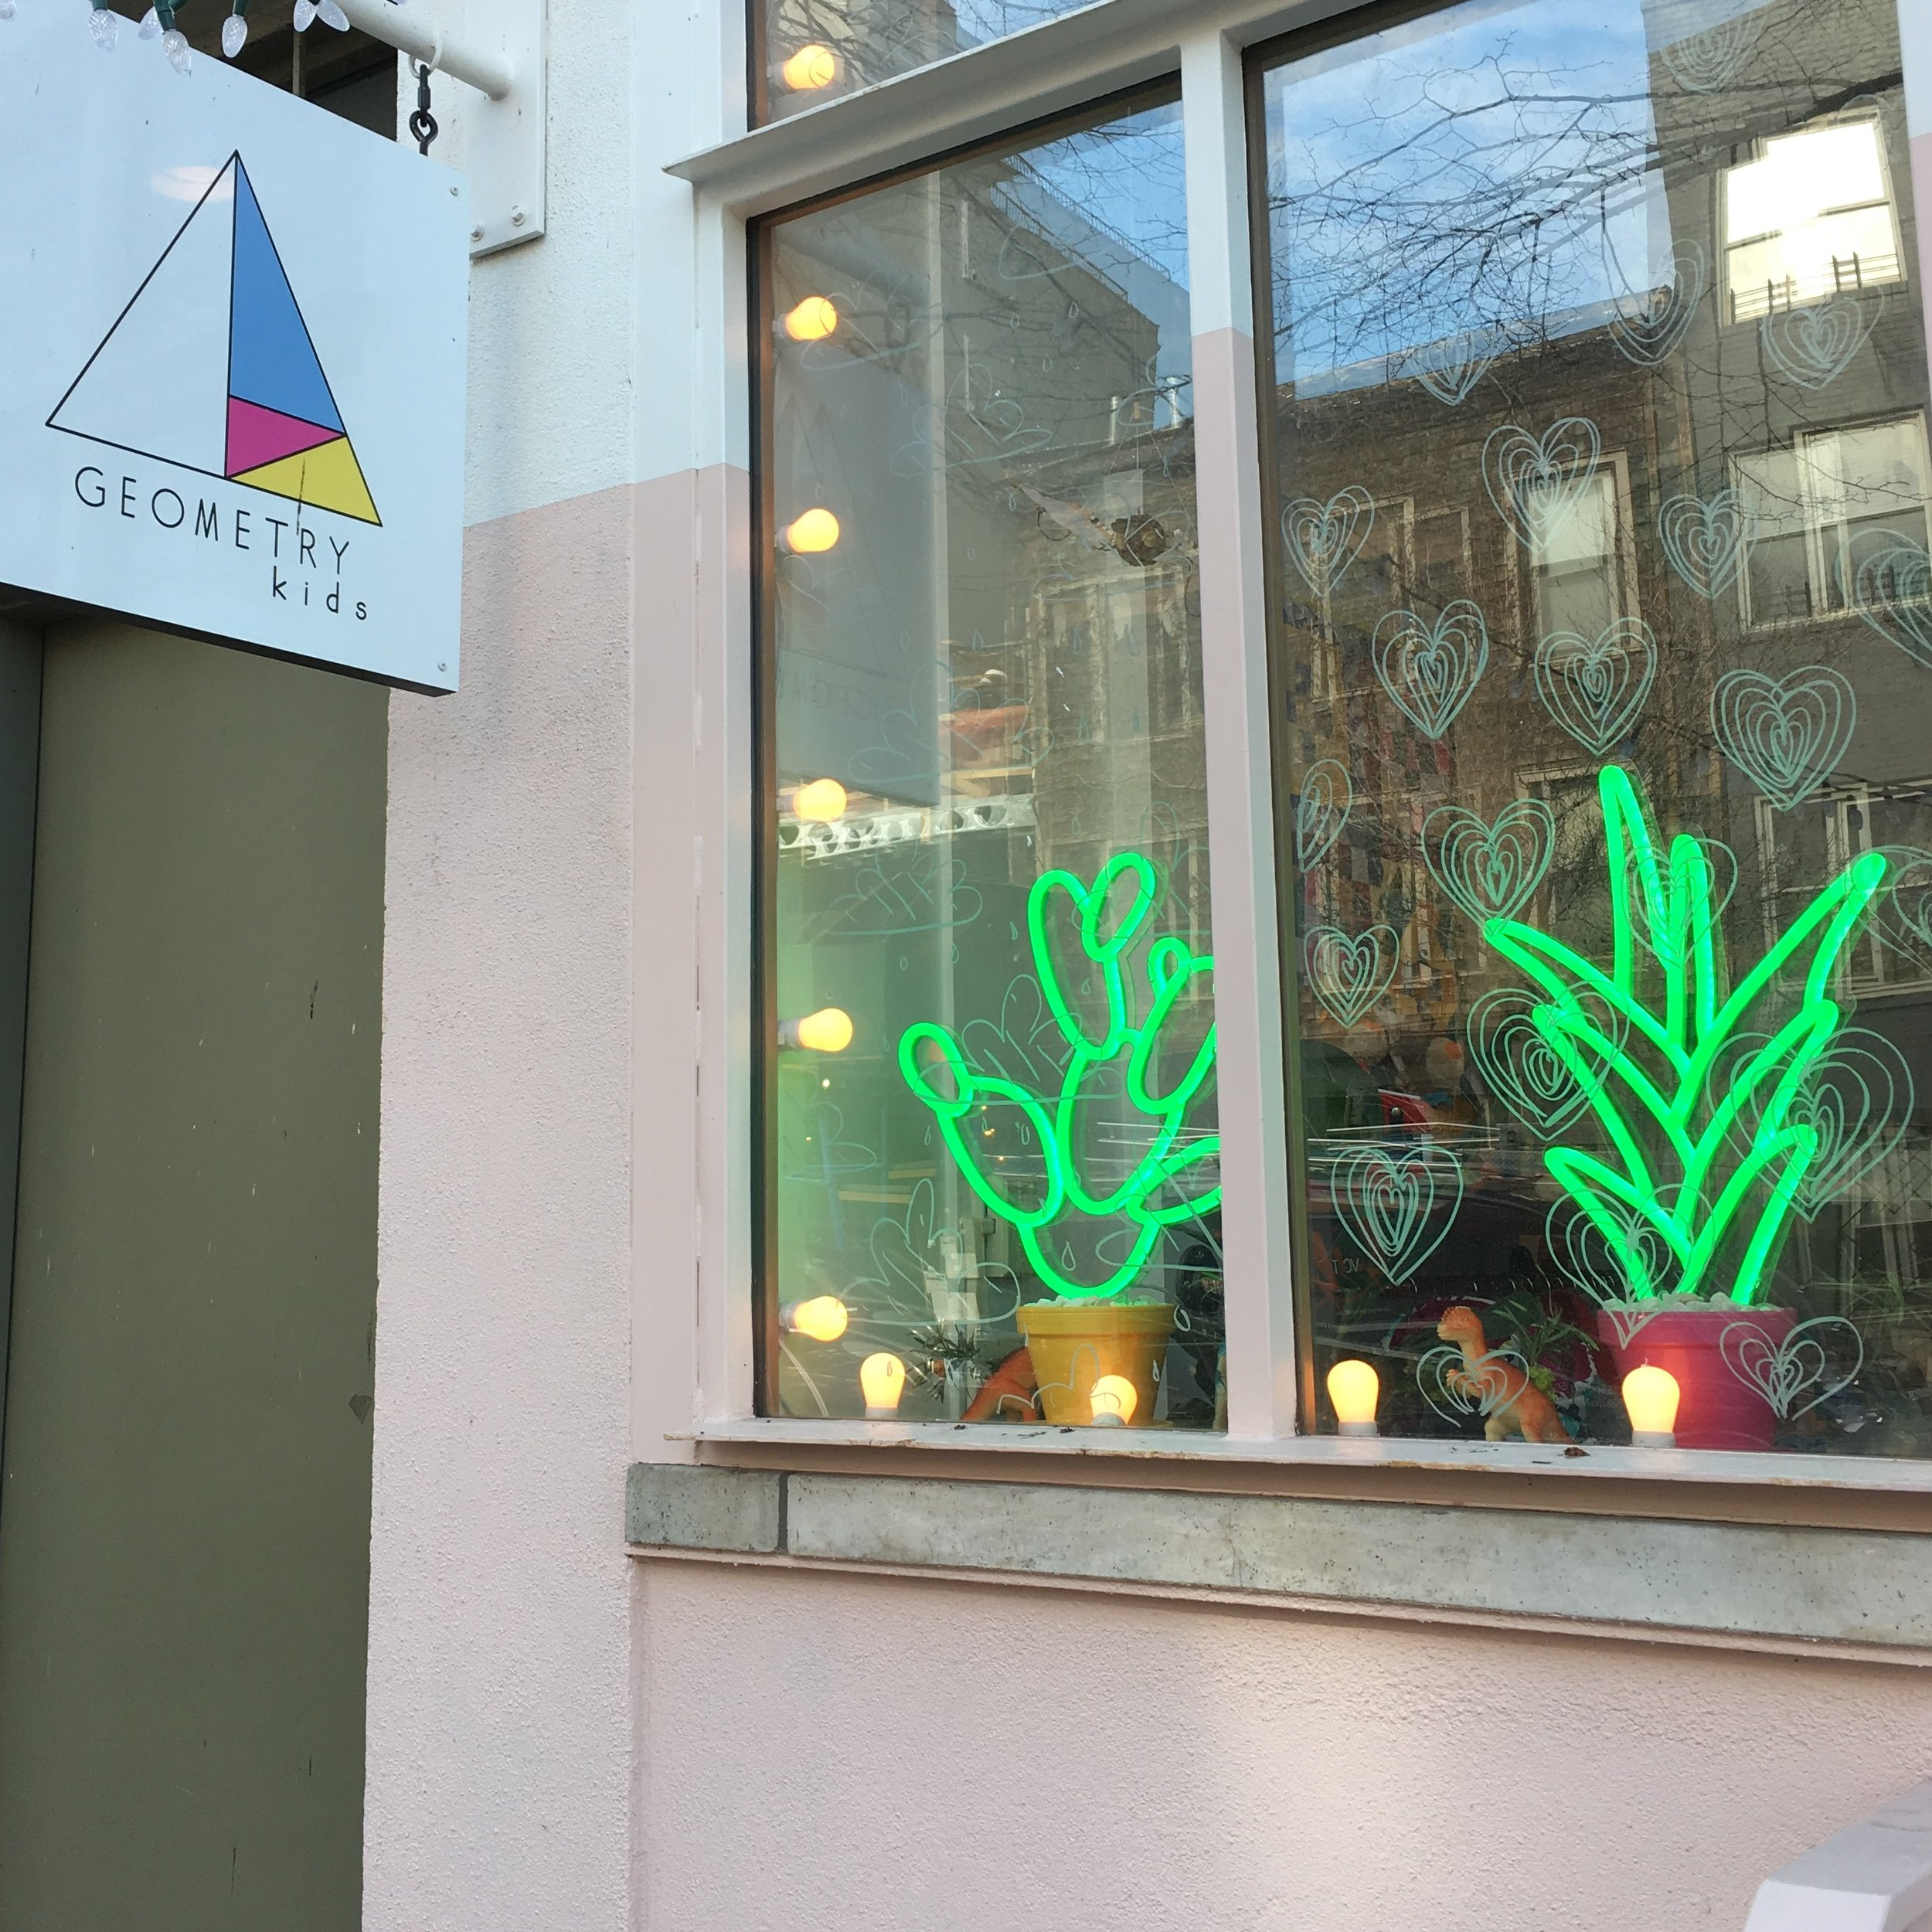 Our Pear Cactus and Aloe Vera LED neons in the window